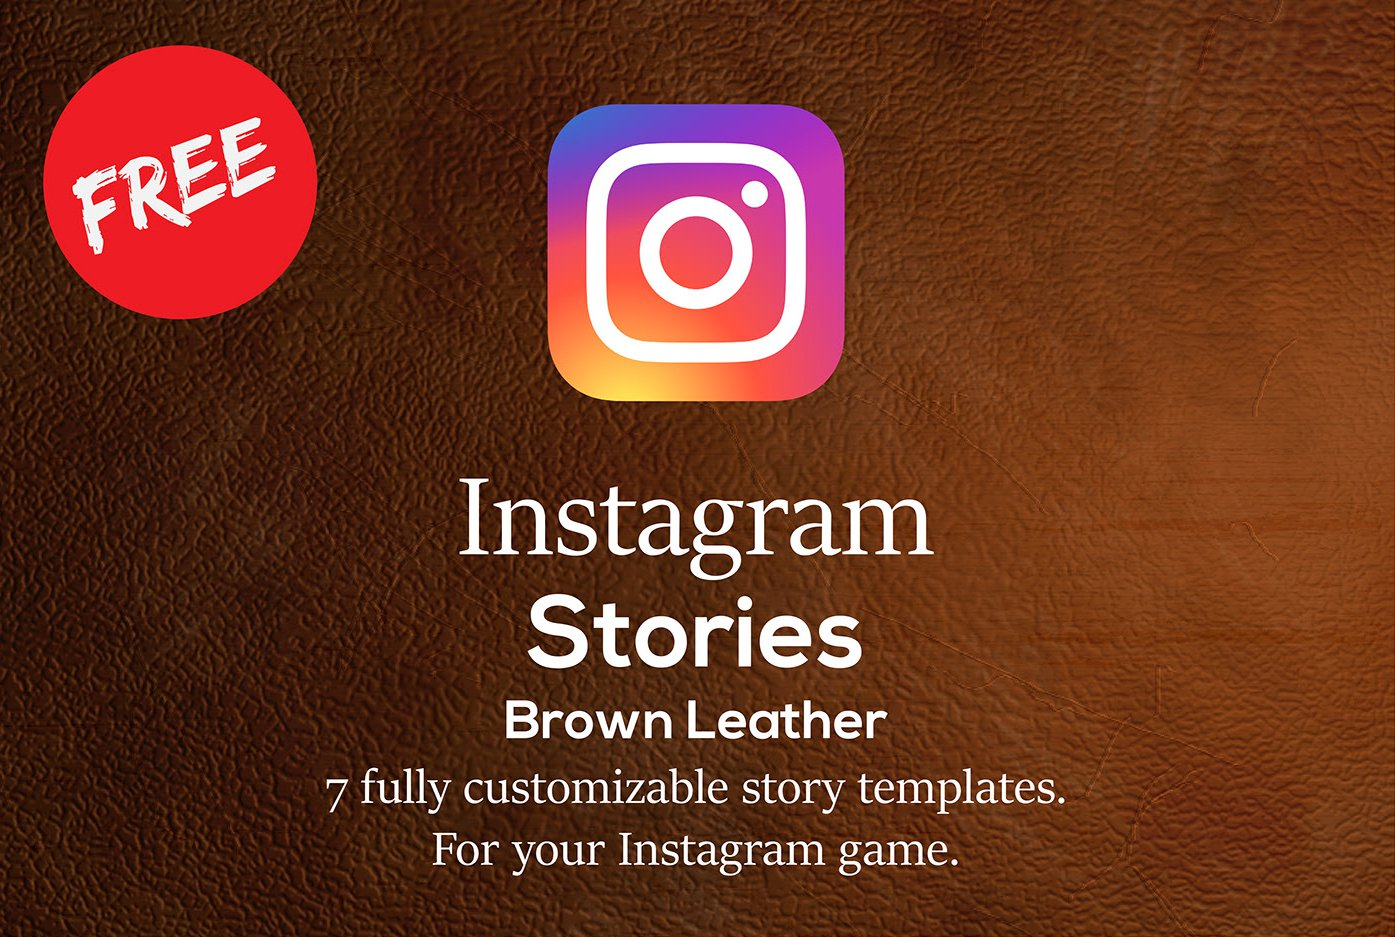 Instagram Stories Brown Leather set